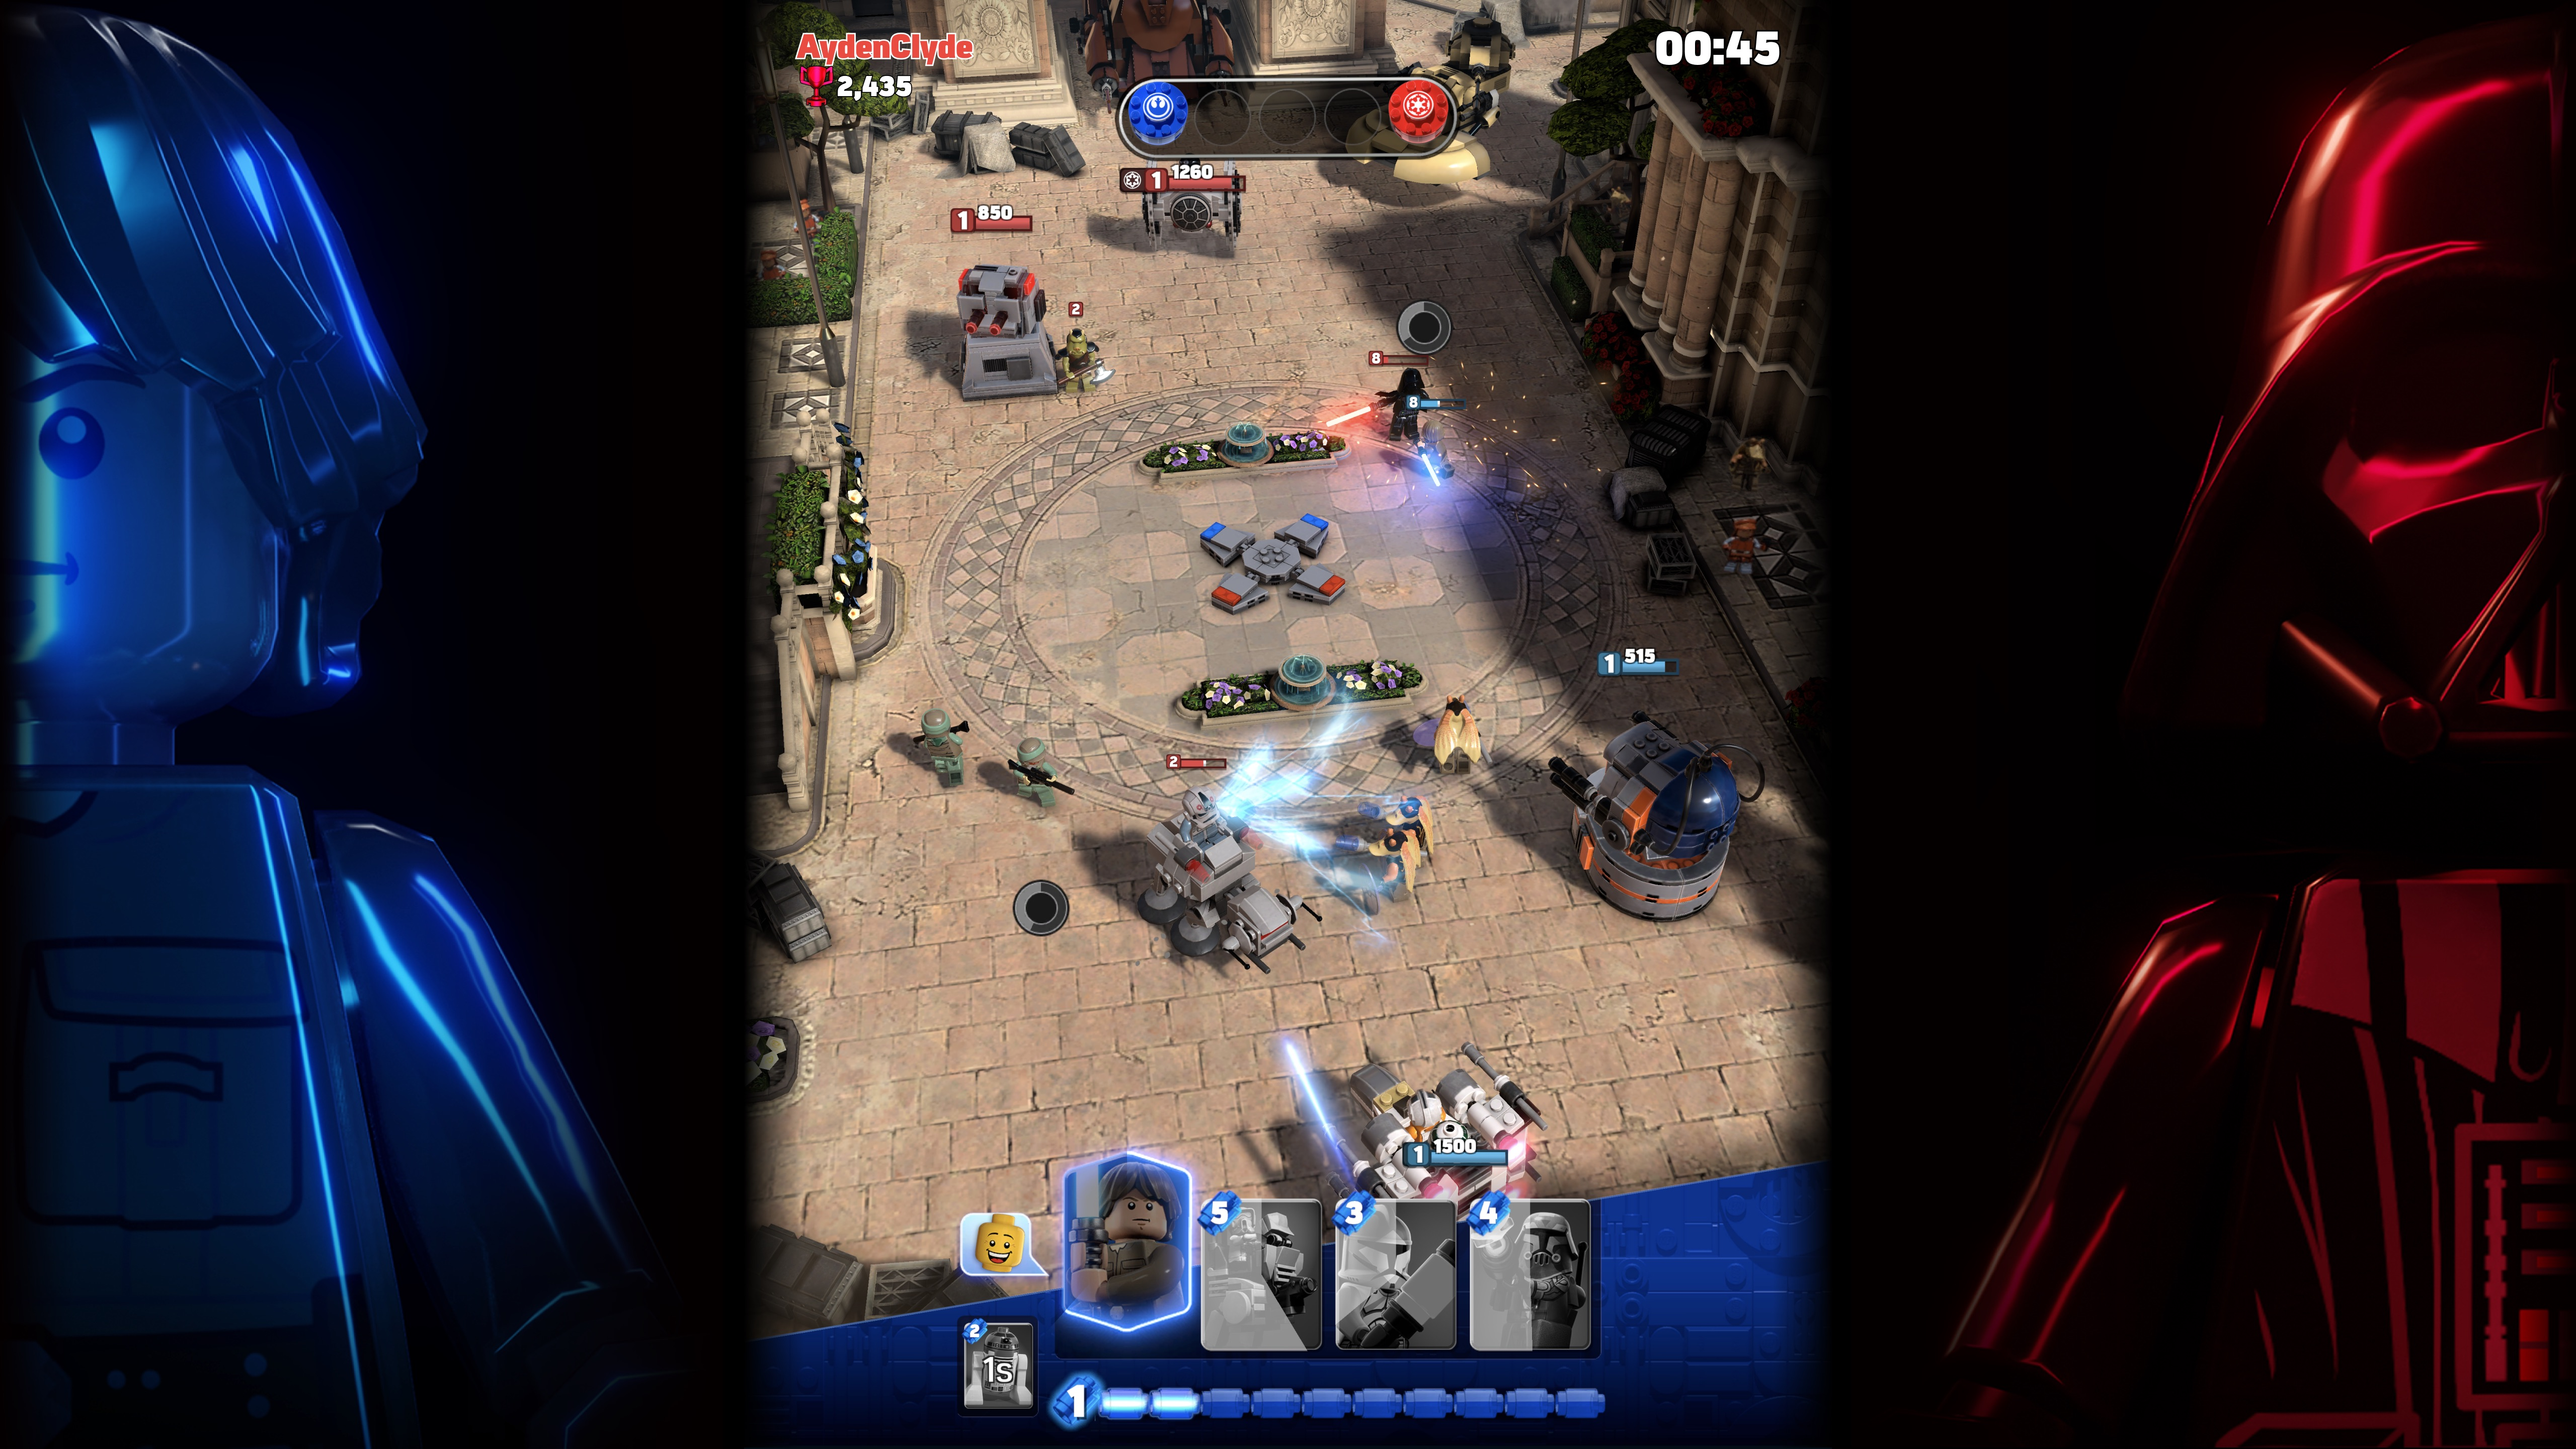 Lego Star Wars Battles coming soon exclusively to Apple Arcade - CNET